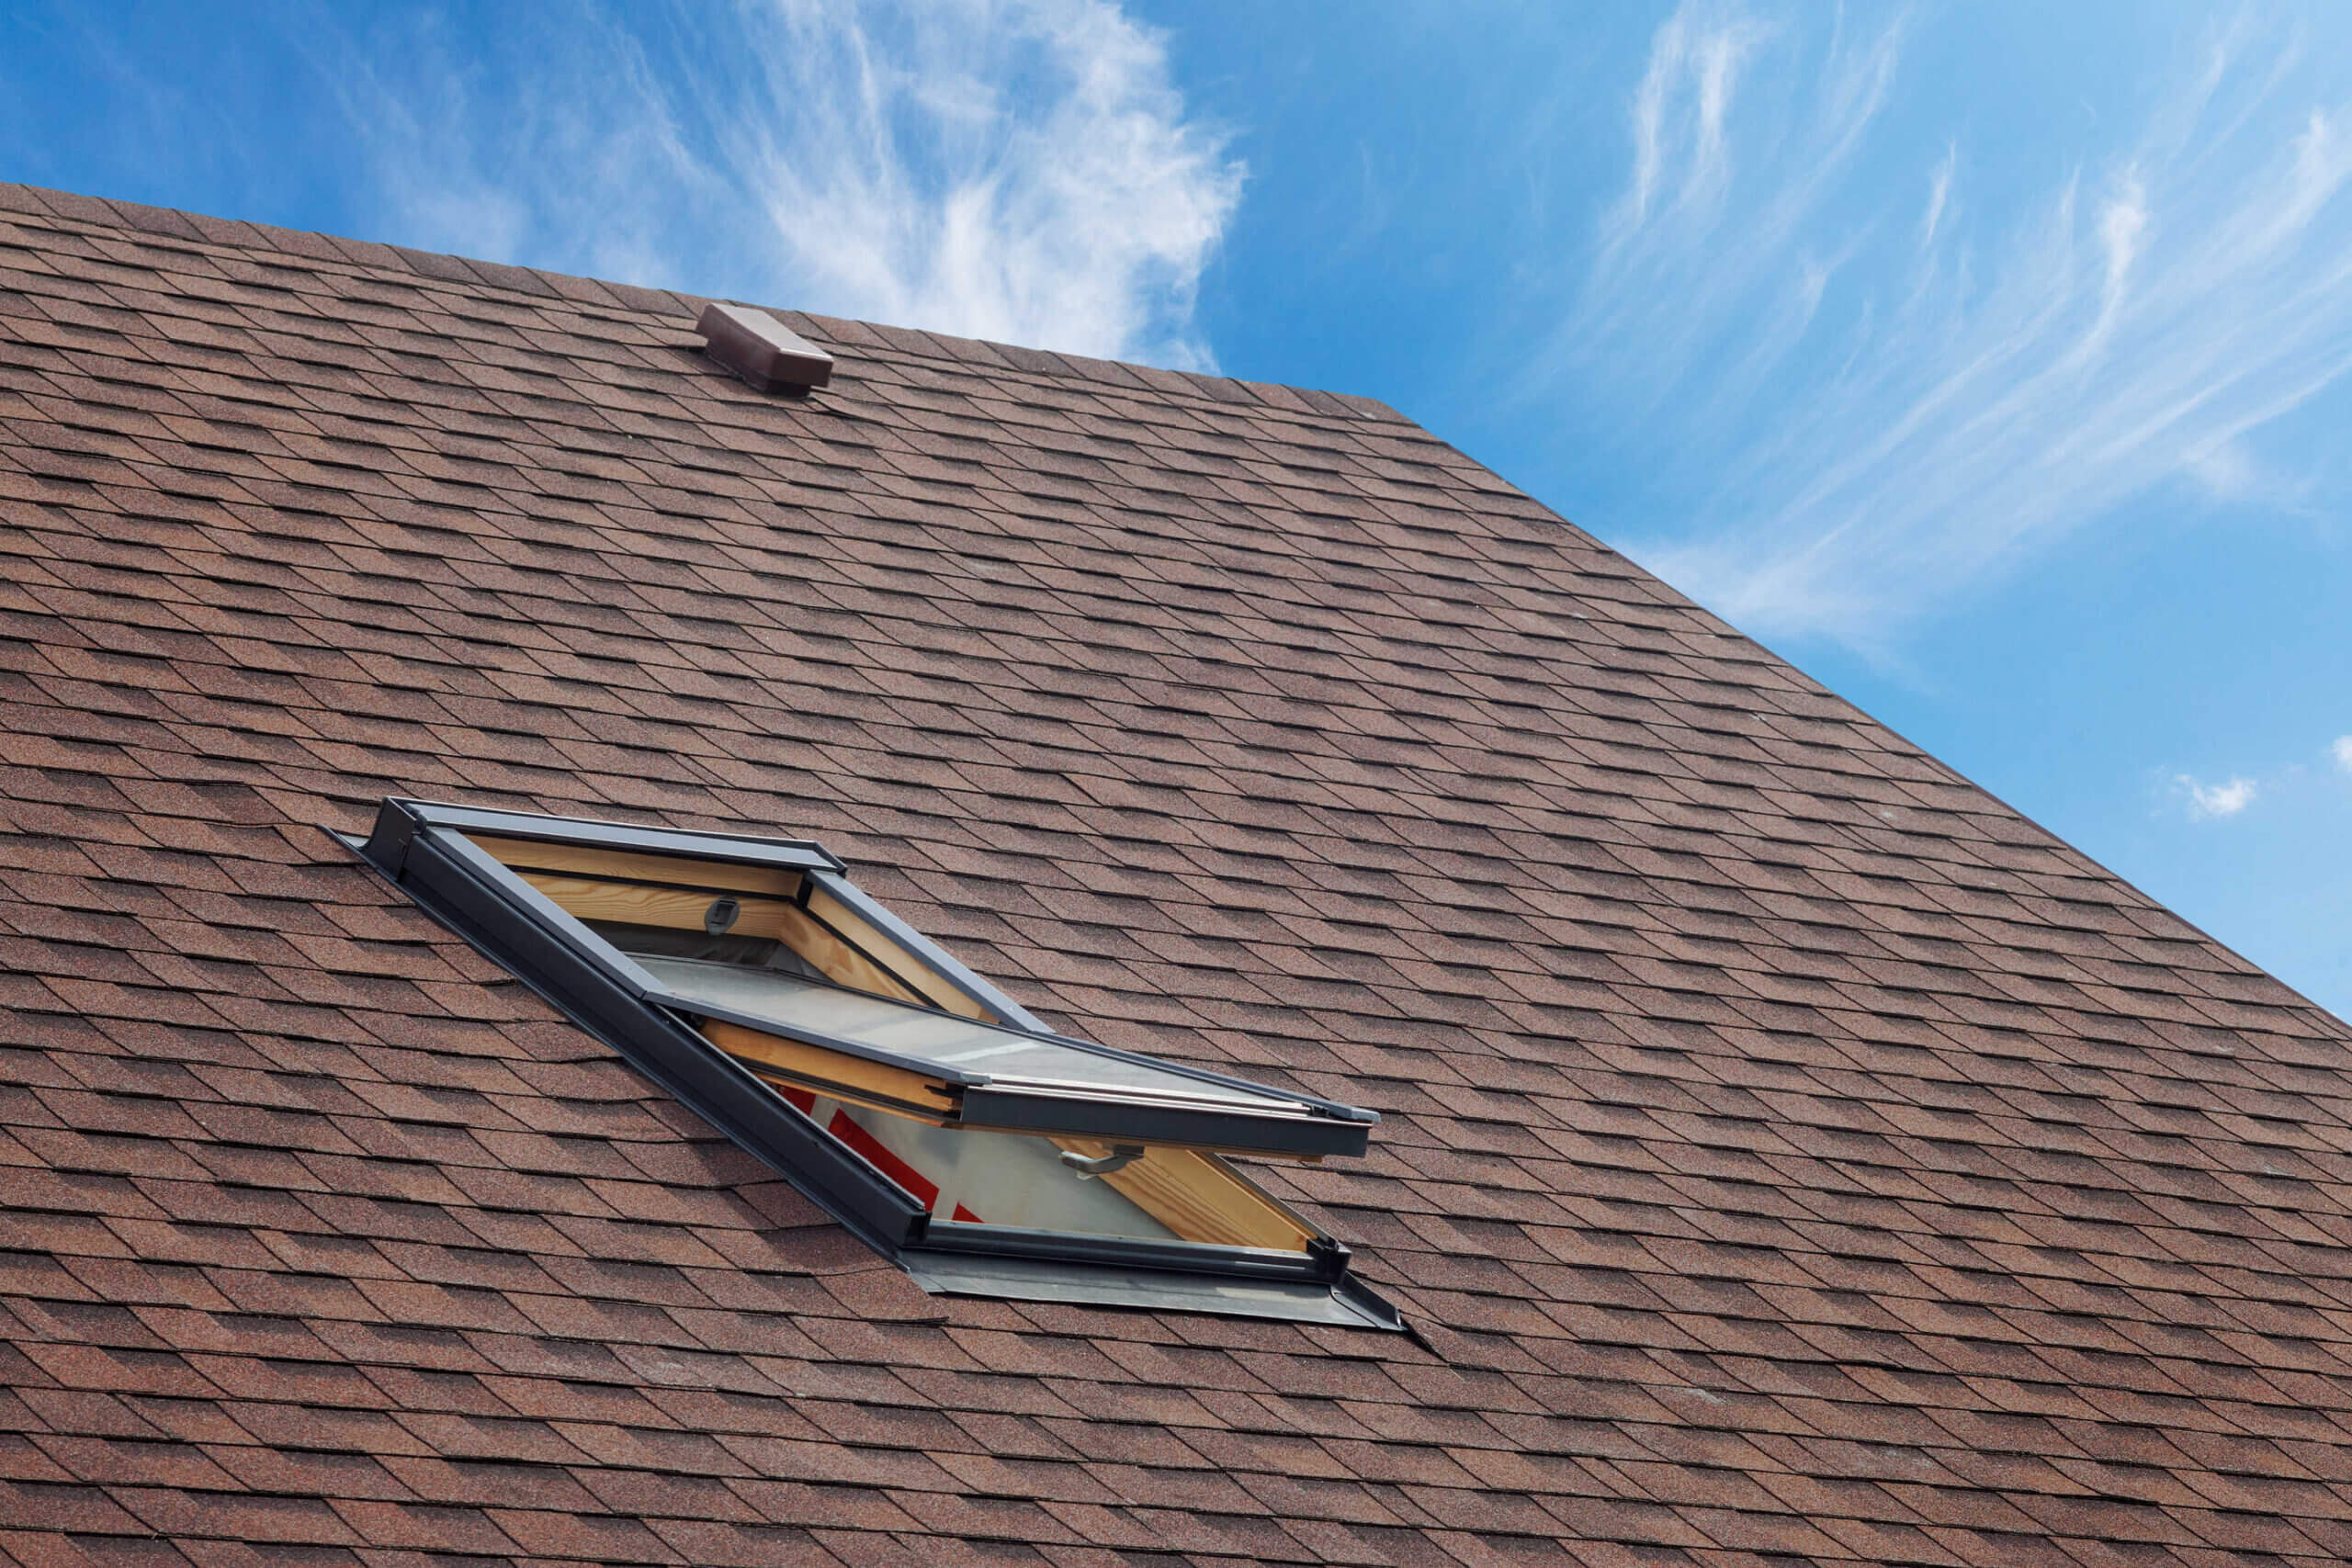 This is a picture of an asphalt roof shingles.